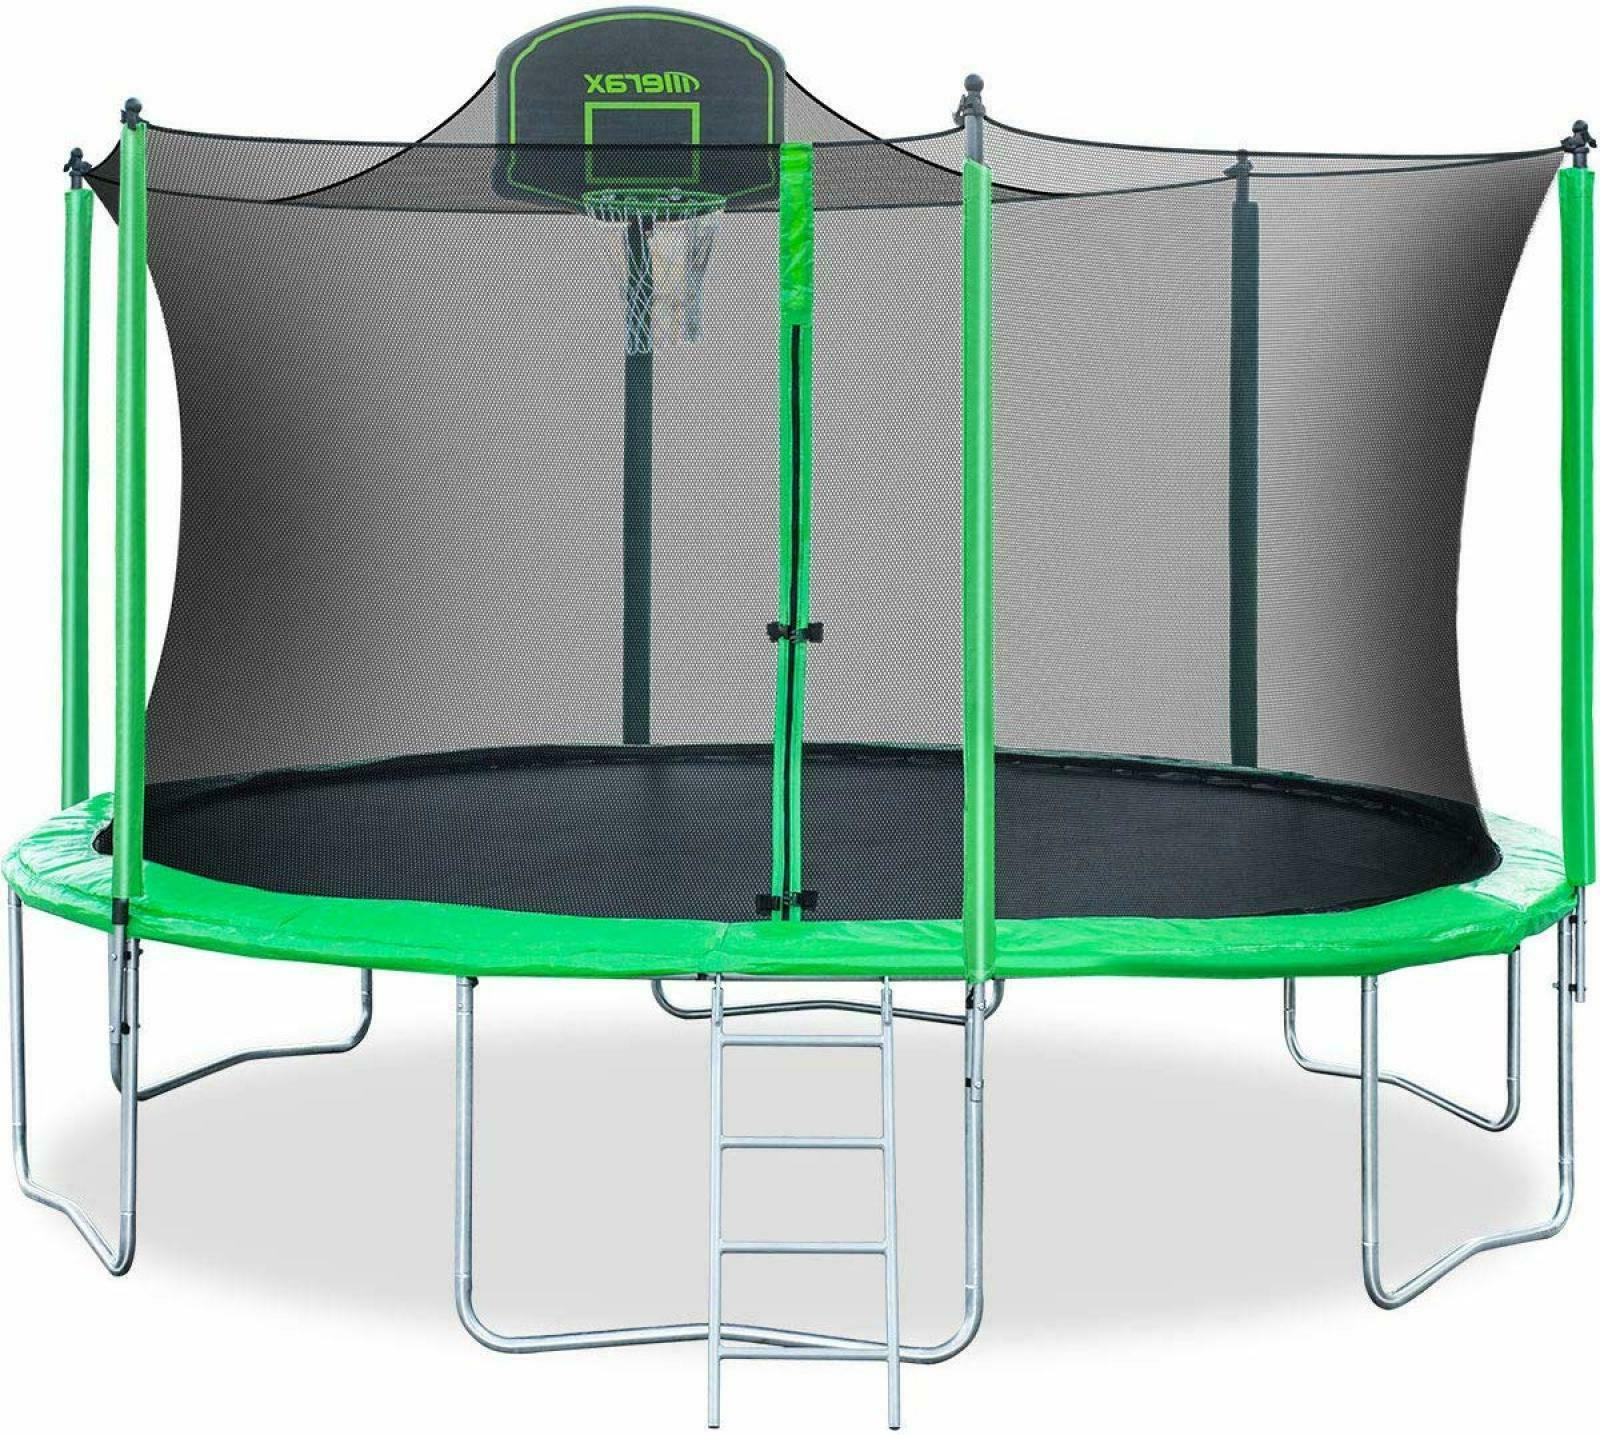 Merax 14FT 12FT Trampoline with Safety Enclosure Net, Basket